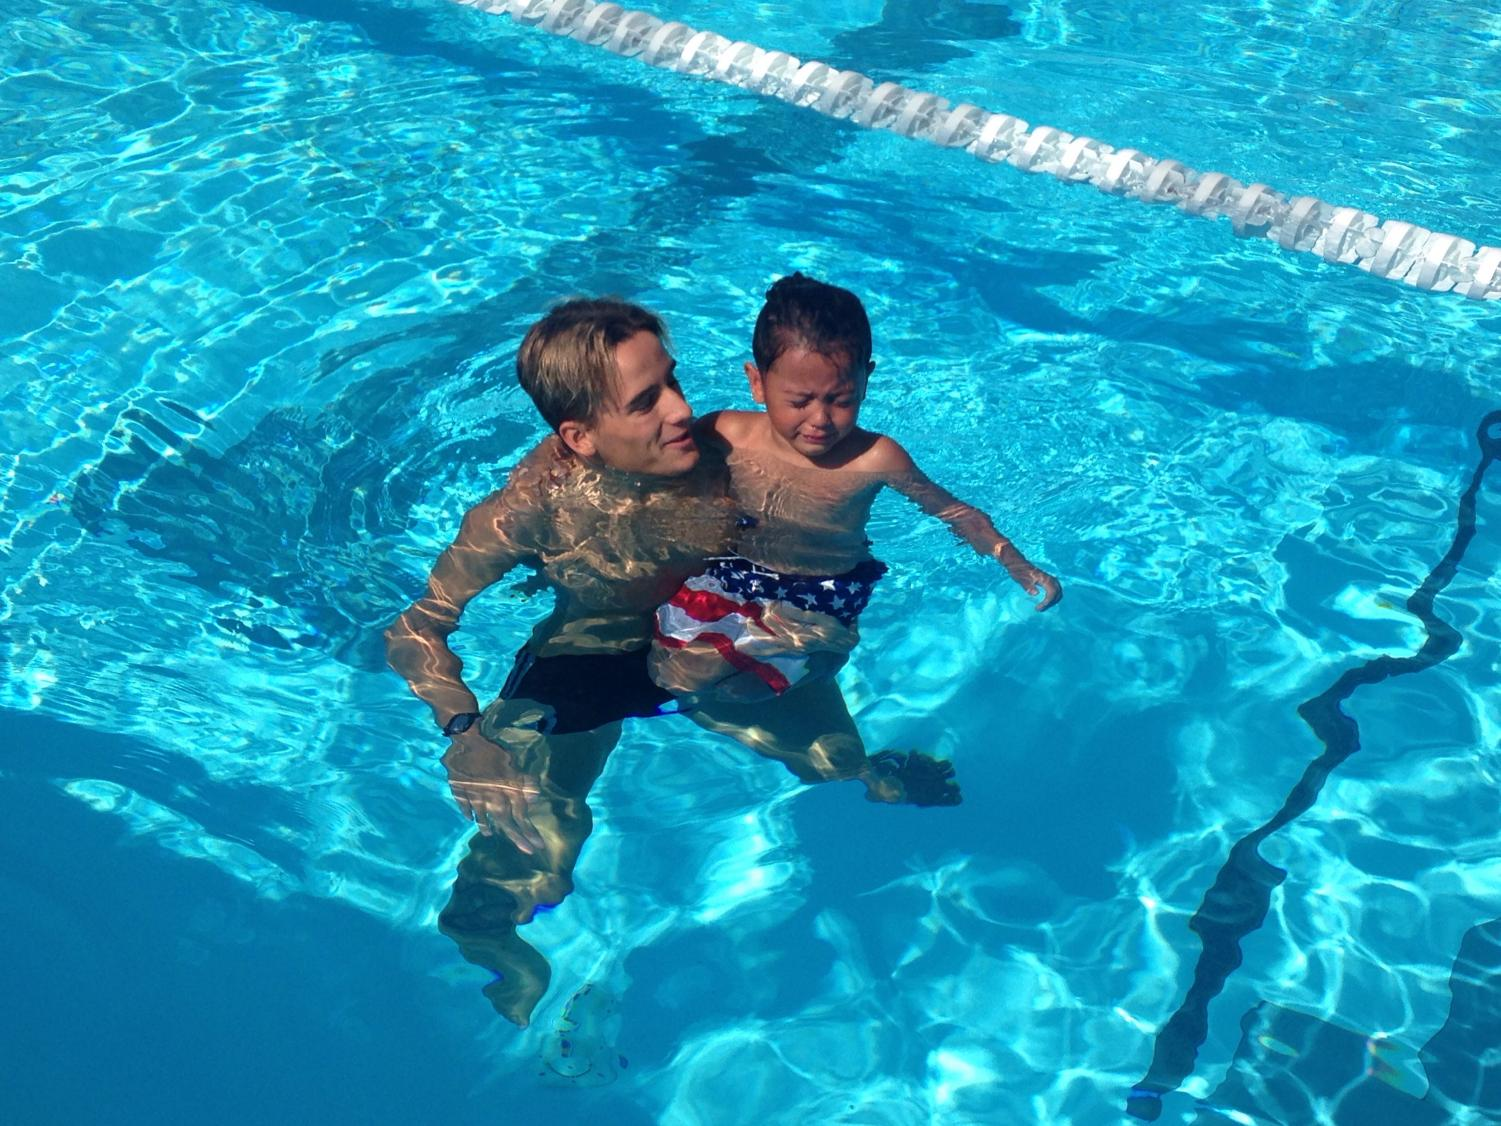 Tanner Lopes, a member of the Bakersfield College swim team teaches Braylen Davis how to be comfortable in the water.